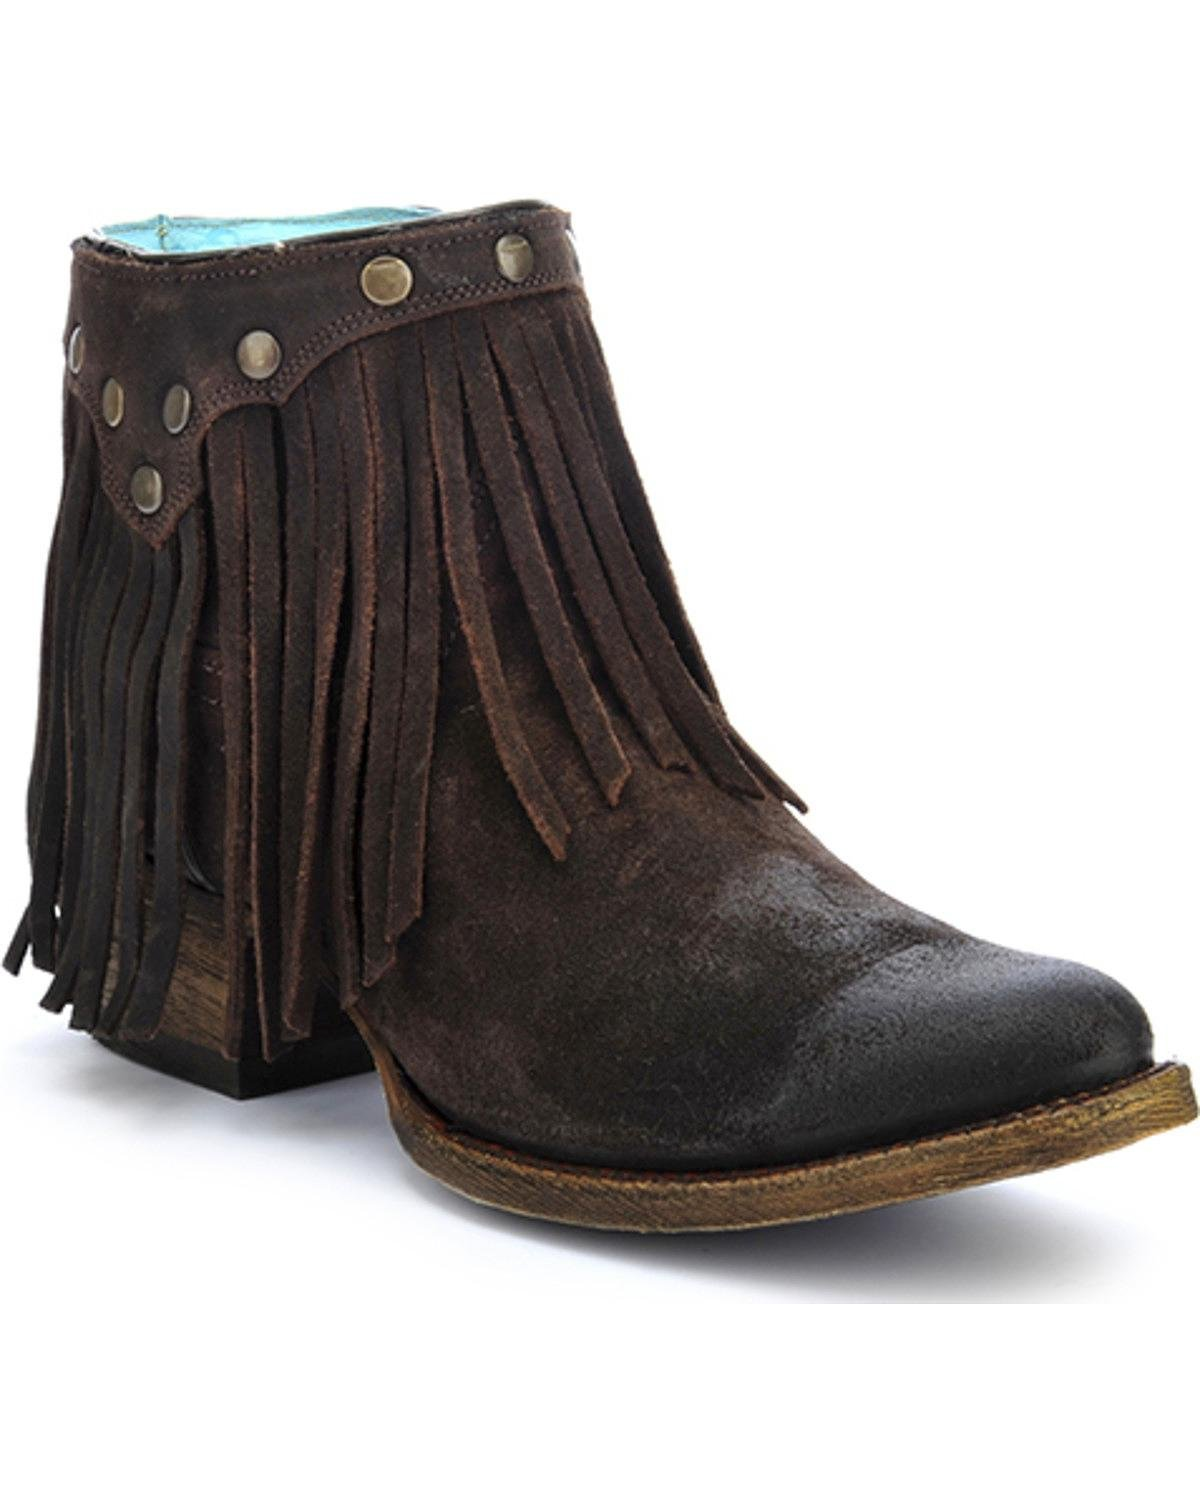 CORRAL Women's Fringe Ankle Boot Round Toe - A3136 B01EYM4J38 6 B(M) US Brown